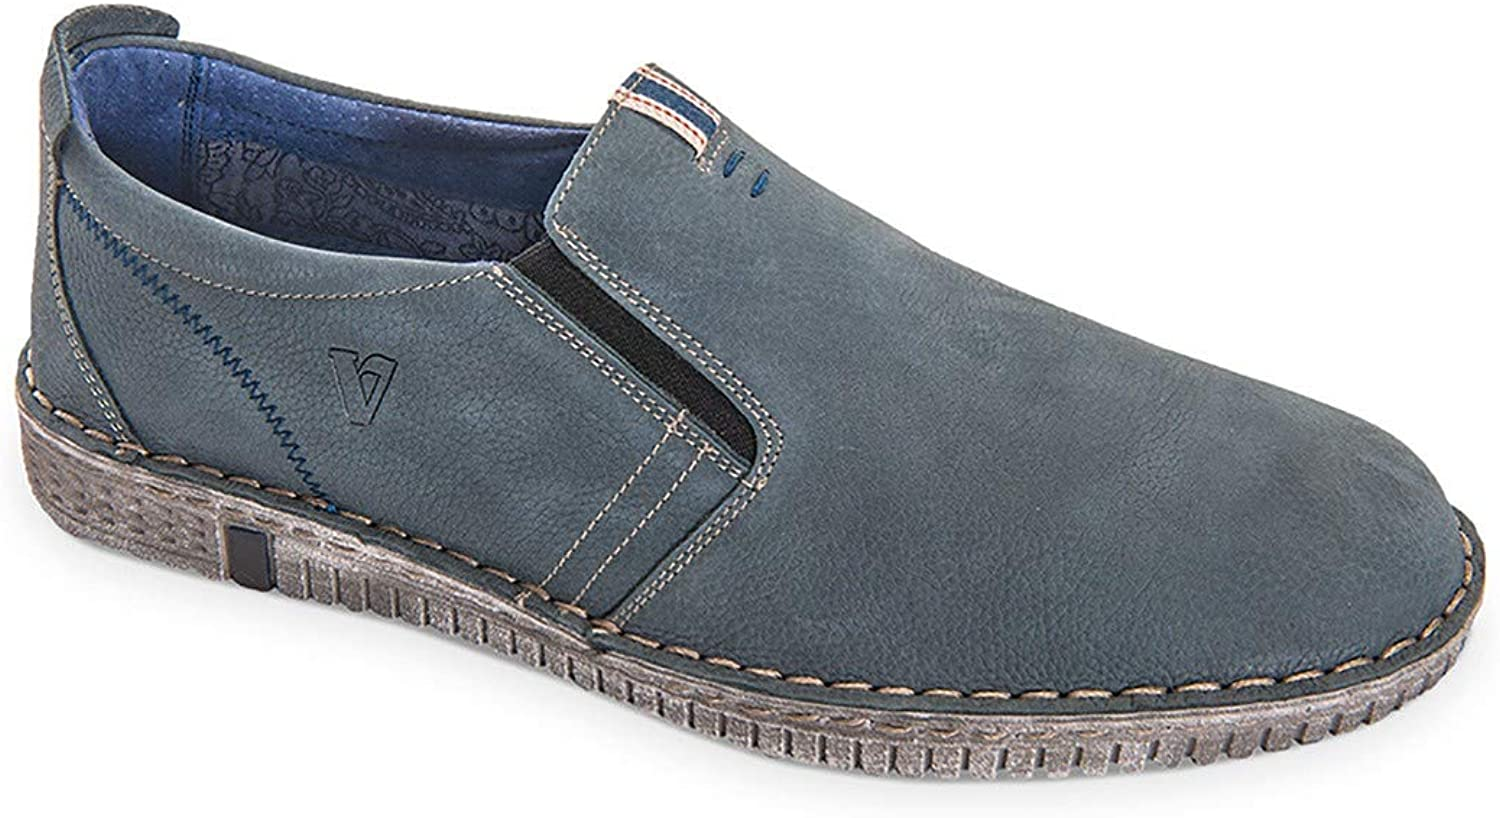 Vallegreen 13835 Mocassini Espadrilles College shoes Men in bluee Casual Leather